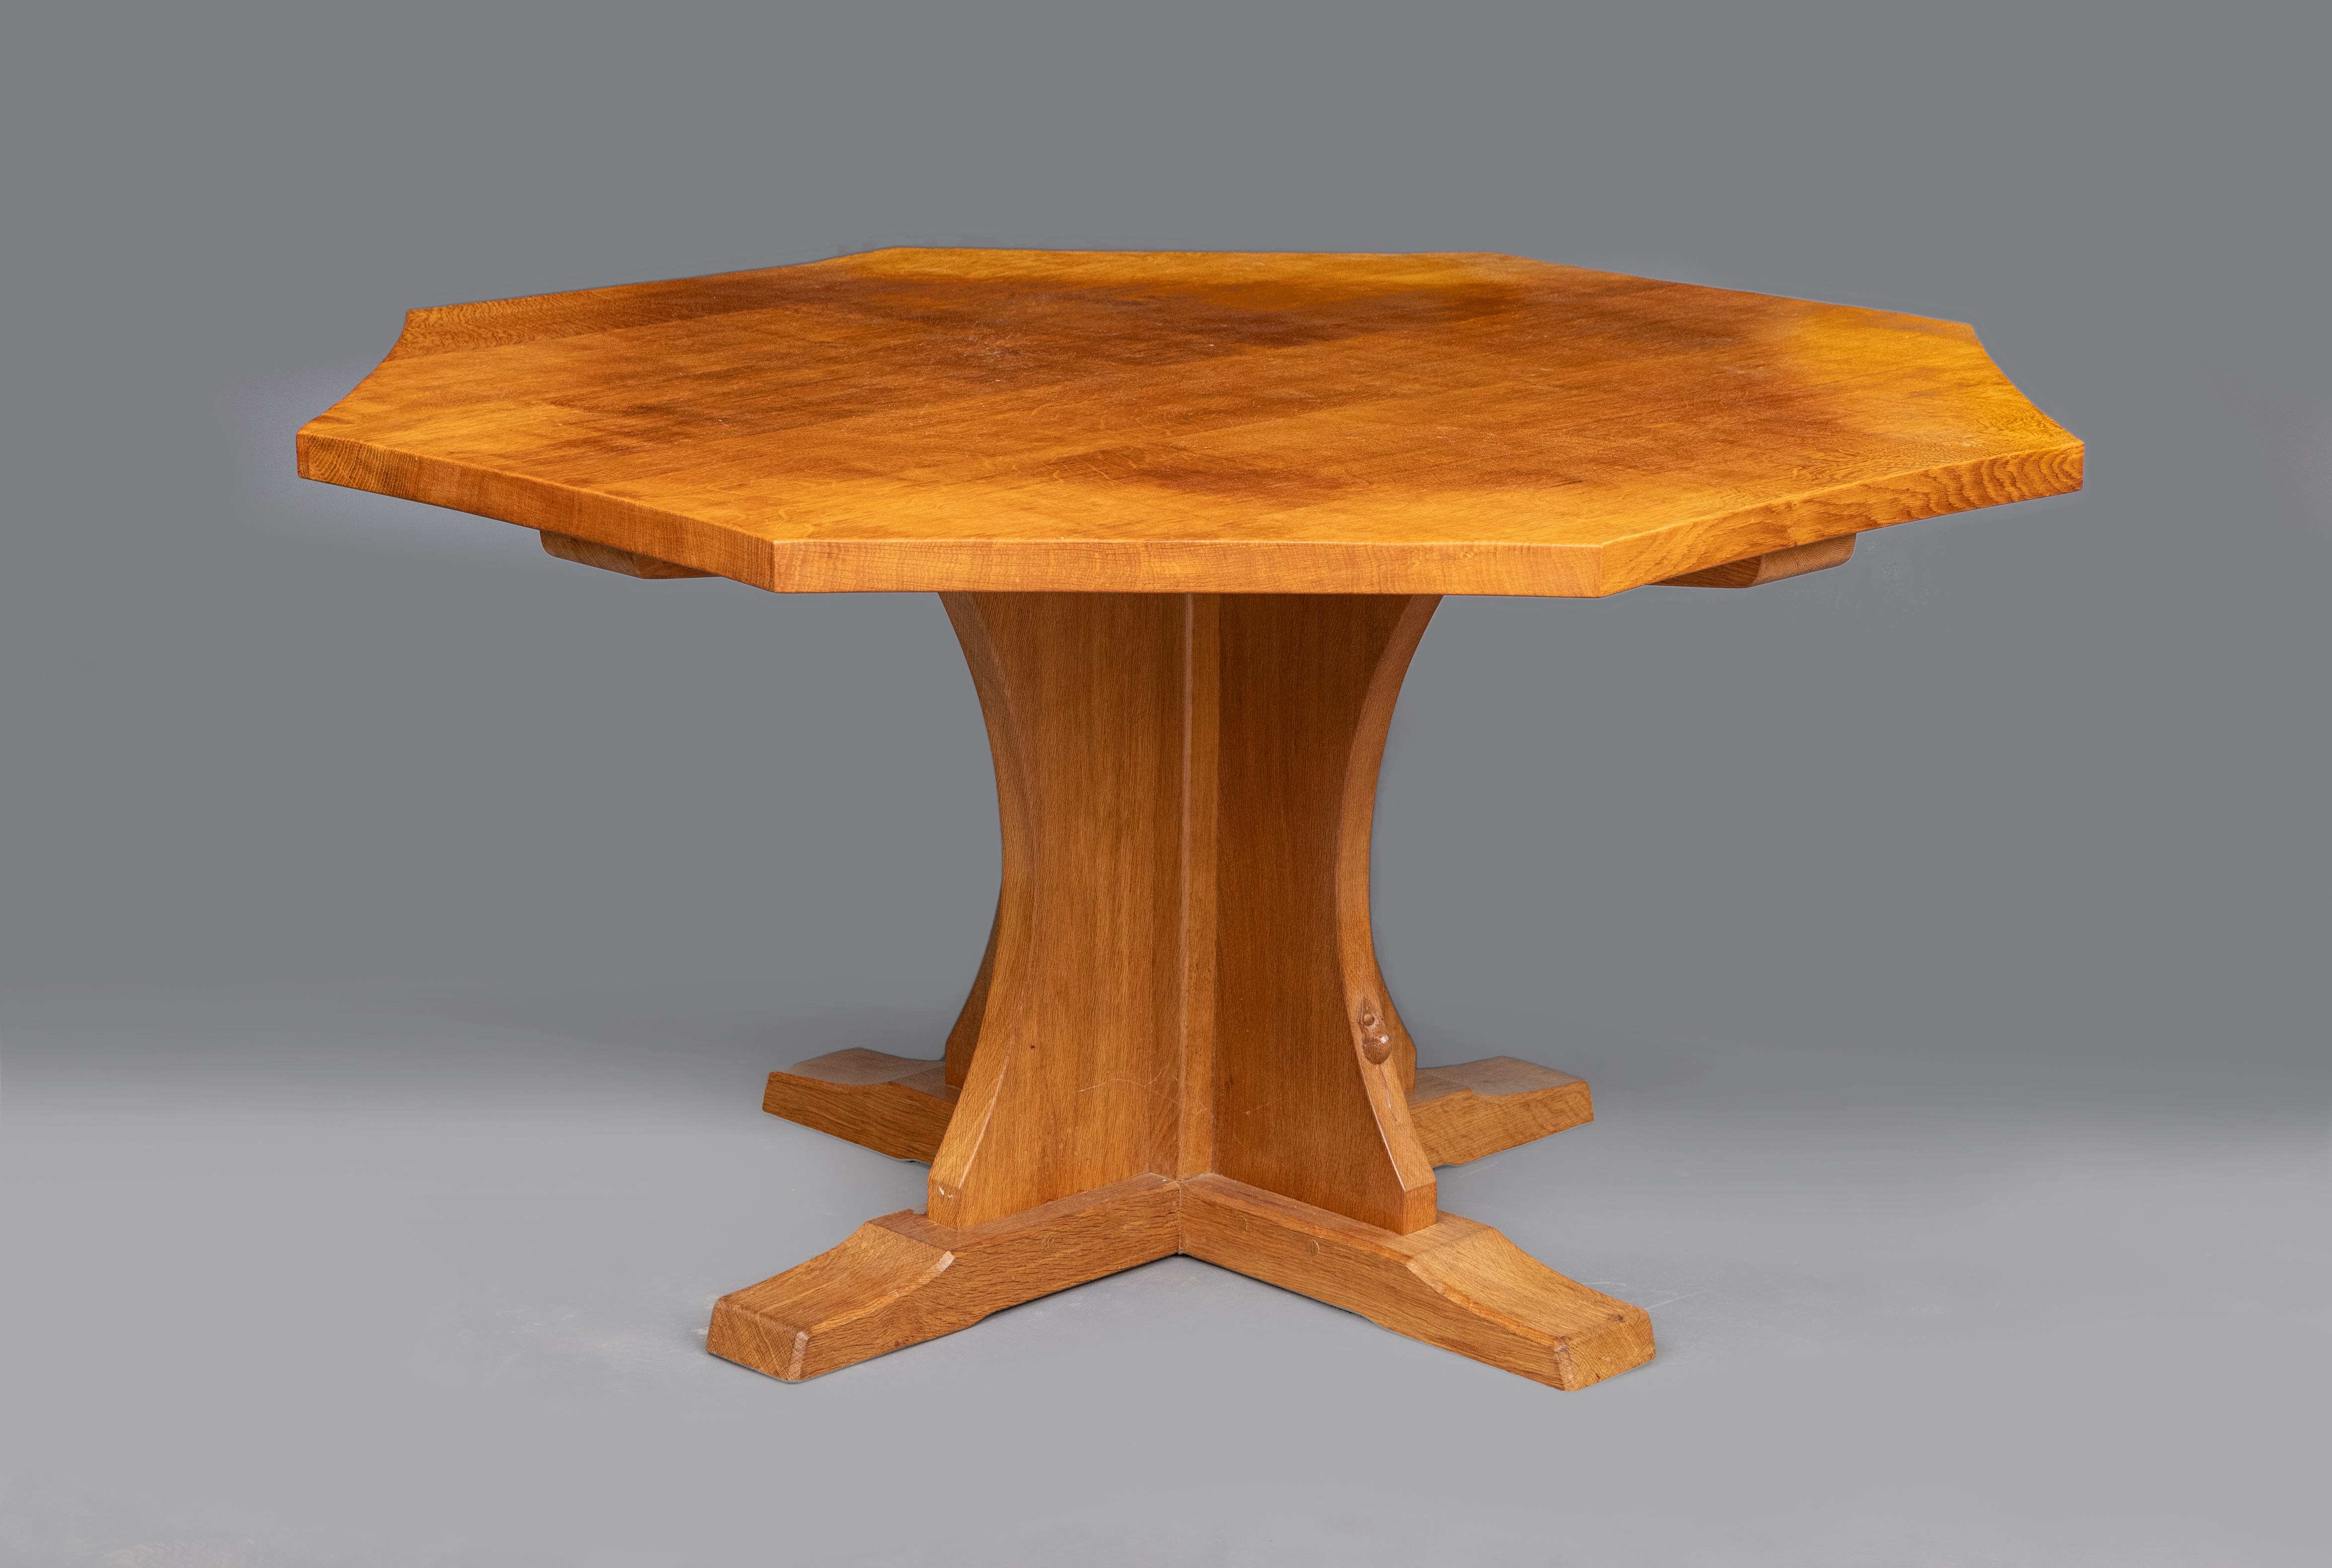 A ROBERT THOMPSON ADZED OAK DINING TABLE, the concave sided octagonal top raised on cruciform